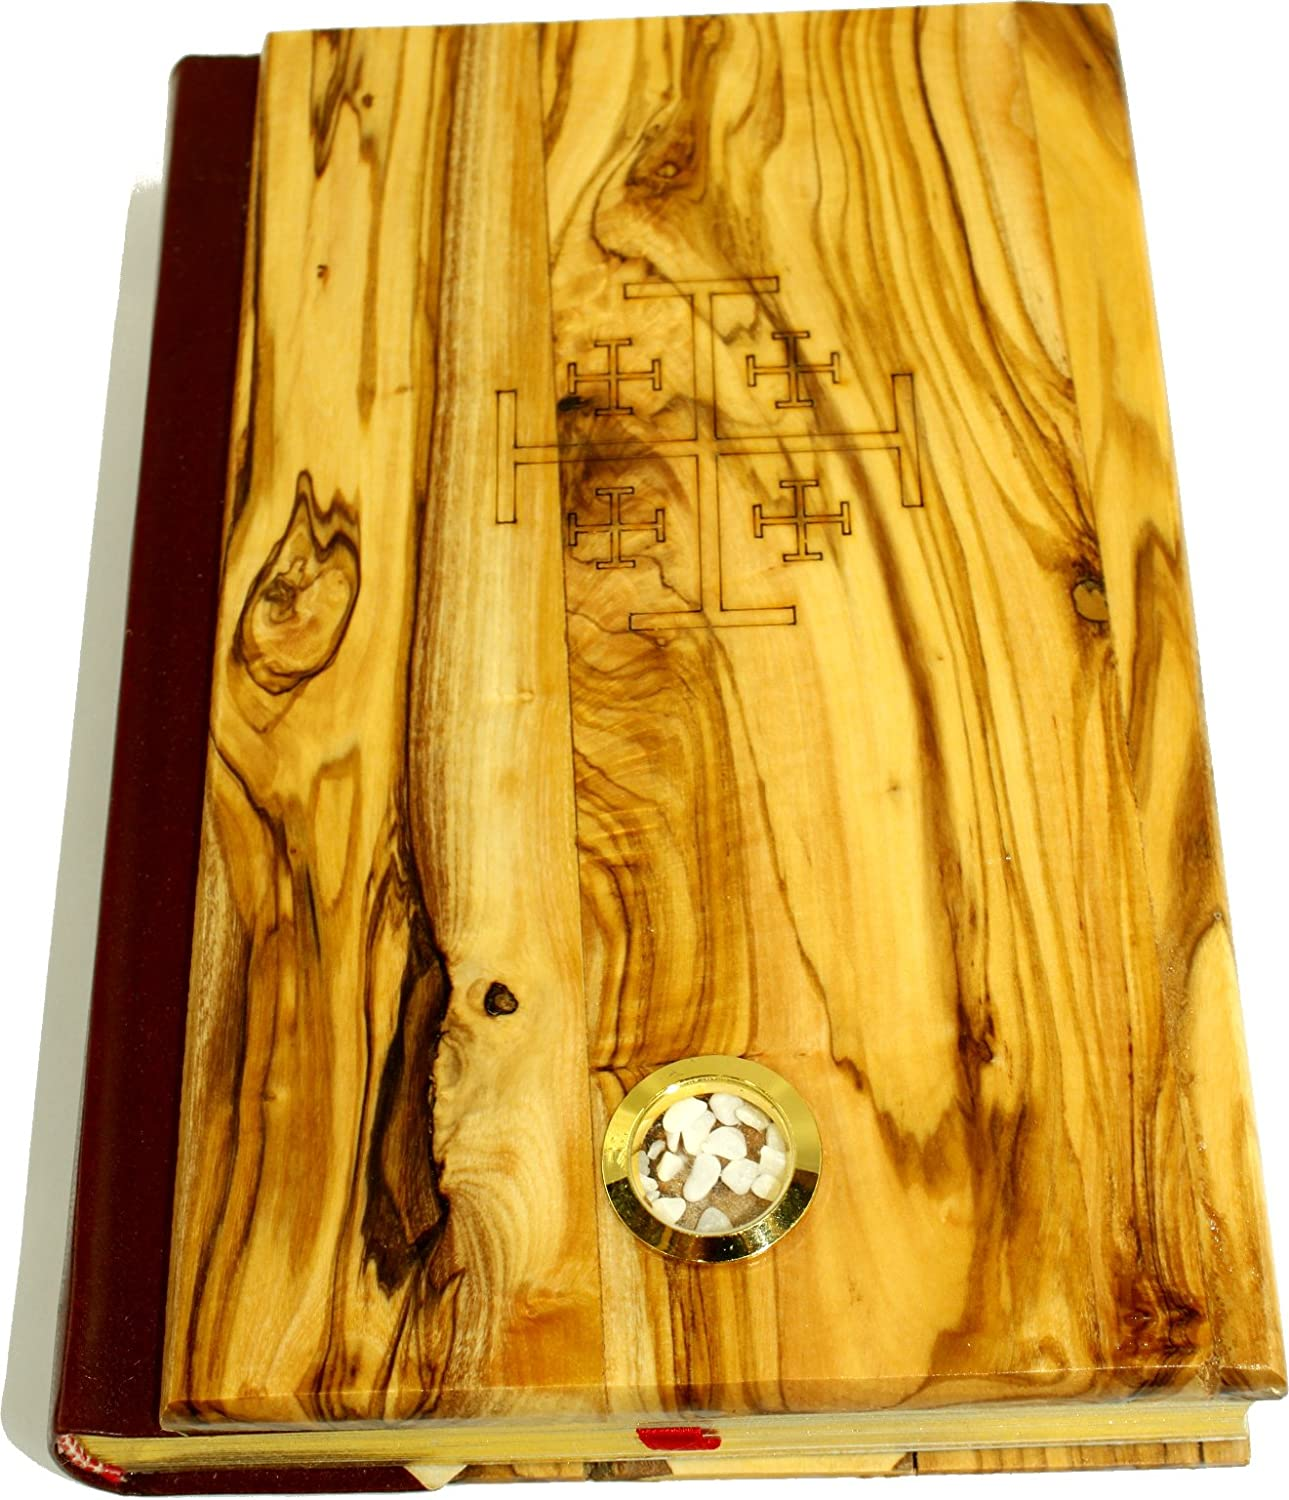 Holy Land Market Olive Wood Covered Millennium Bible with 'Jerusalem Stones'  Red-Letter King James Version of The Old and The New Testament (Large - 8 x 5.5 Inches)